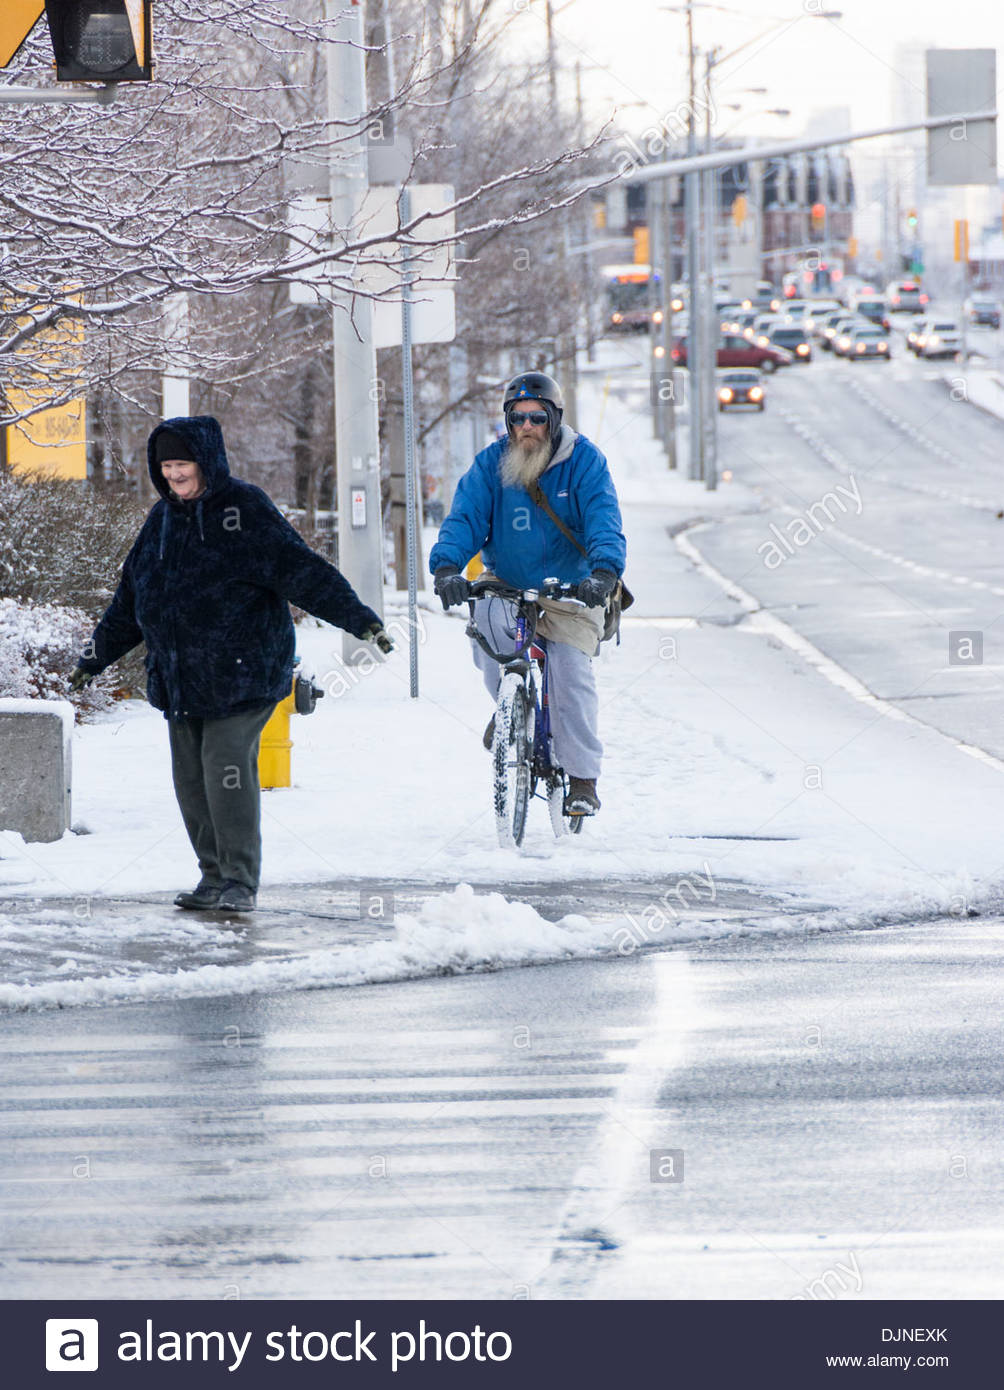 Normal people managing in the harsh Canadian winter. Snowfall in the city - Stock Image